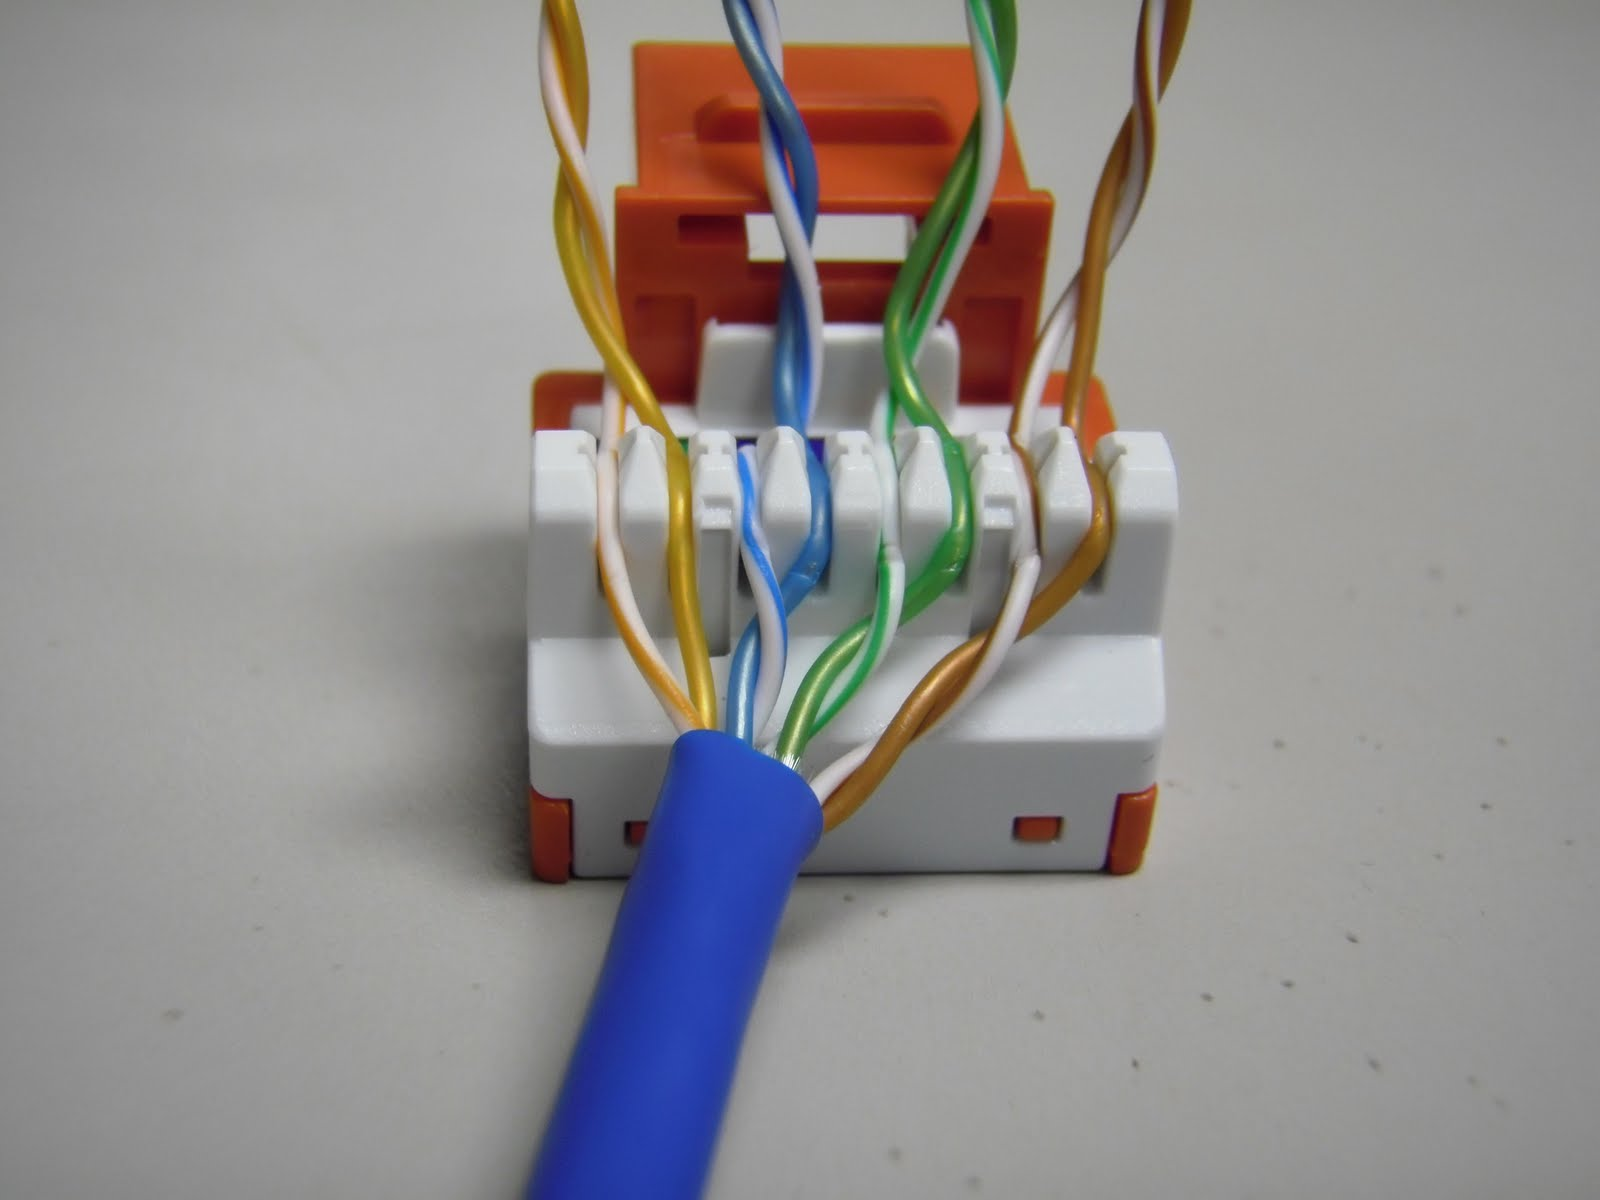 CAT5E+ER+JACK+WIRES+LACED the trench how to punch down cat5e cat6 keystone jacks rj45 female connector wiring diagram at panicattacktreatment.co